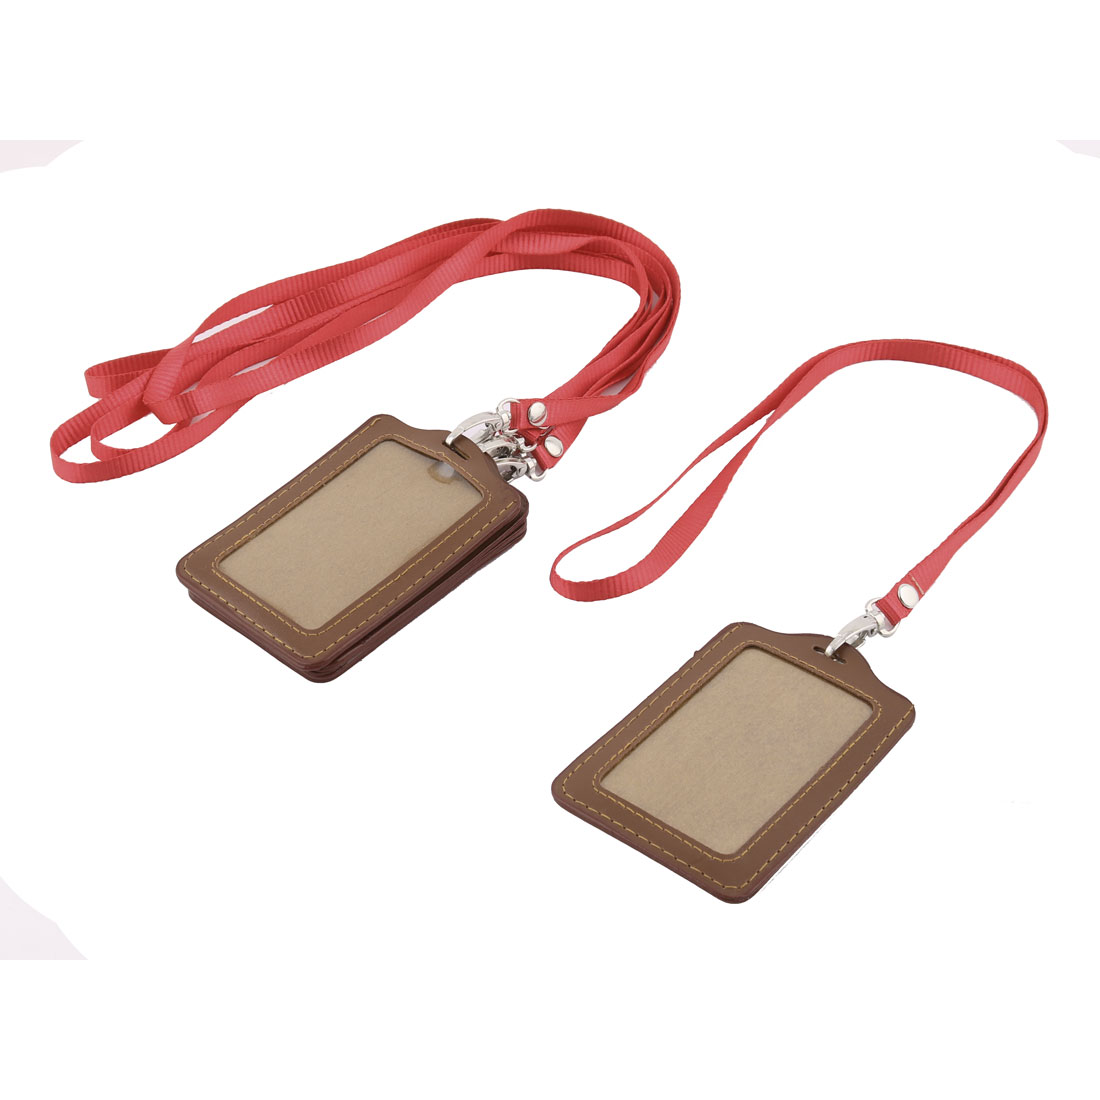 School Company Faux Leather Lanyard Strap Name Badge Credit Card Holder 5pcs